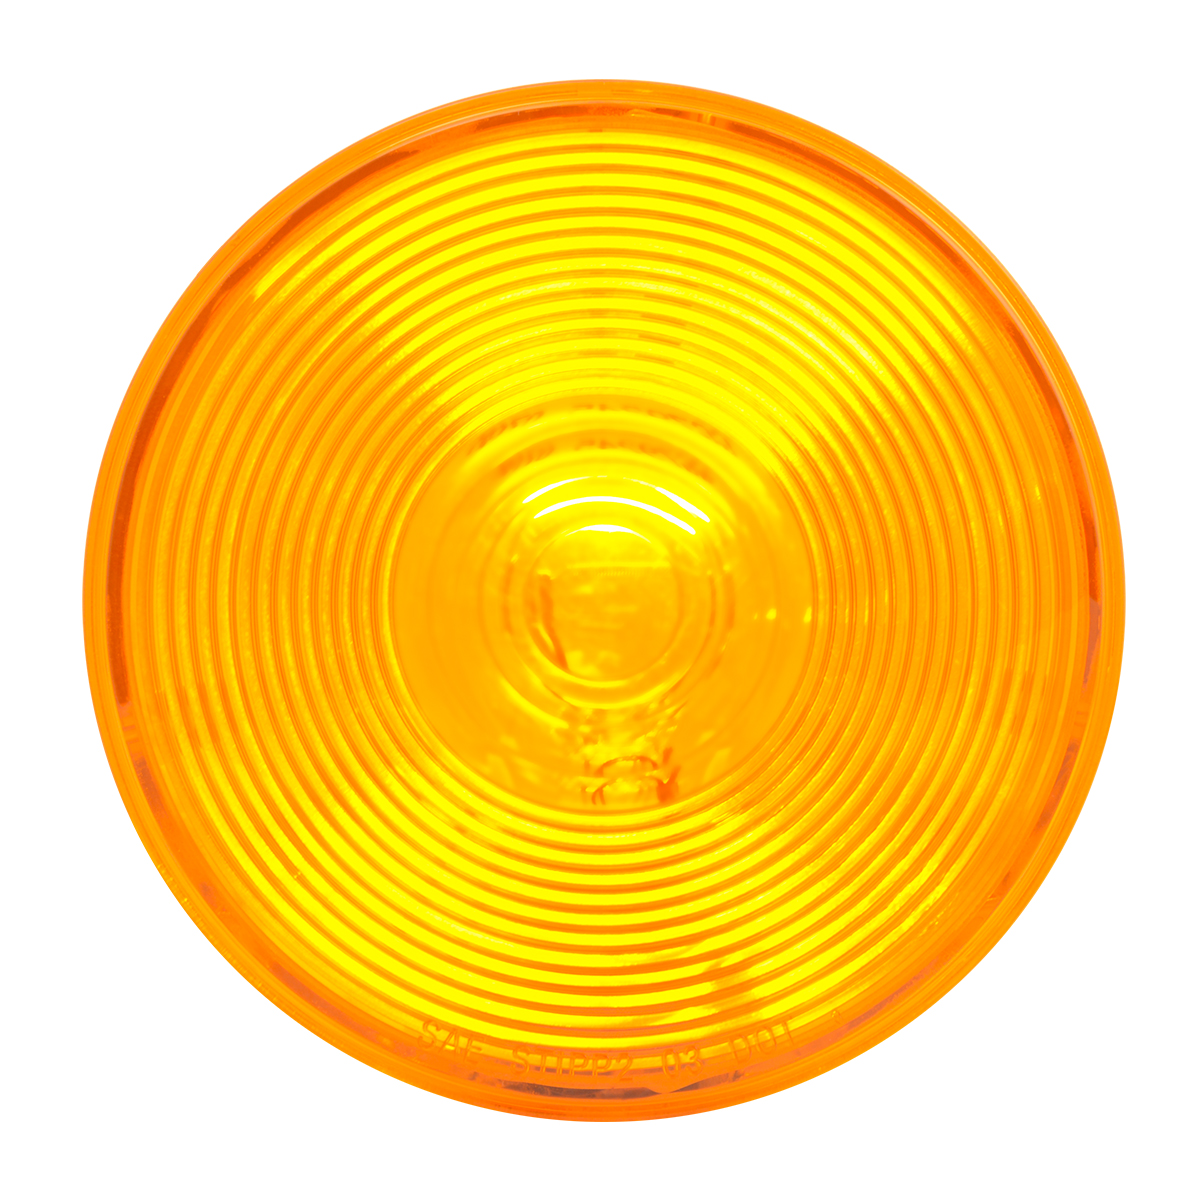 """#79245 4"""" Amber Park/Turn/Clearance Light with Clear Back Housing - Light Only"""